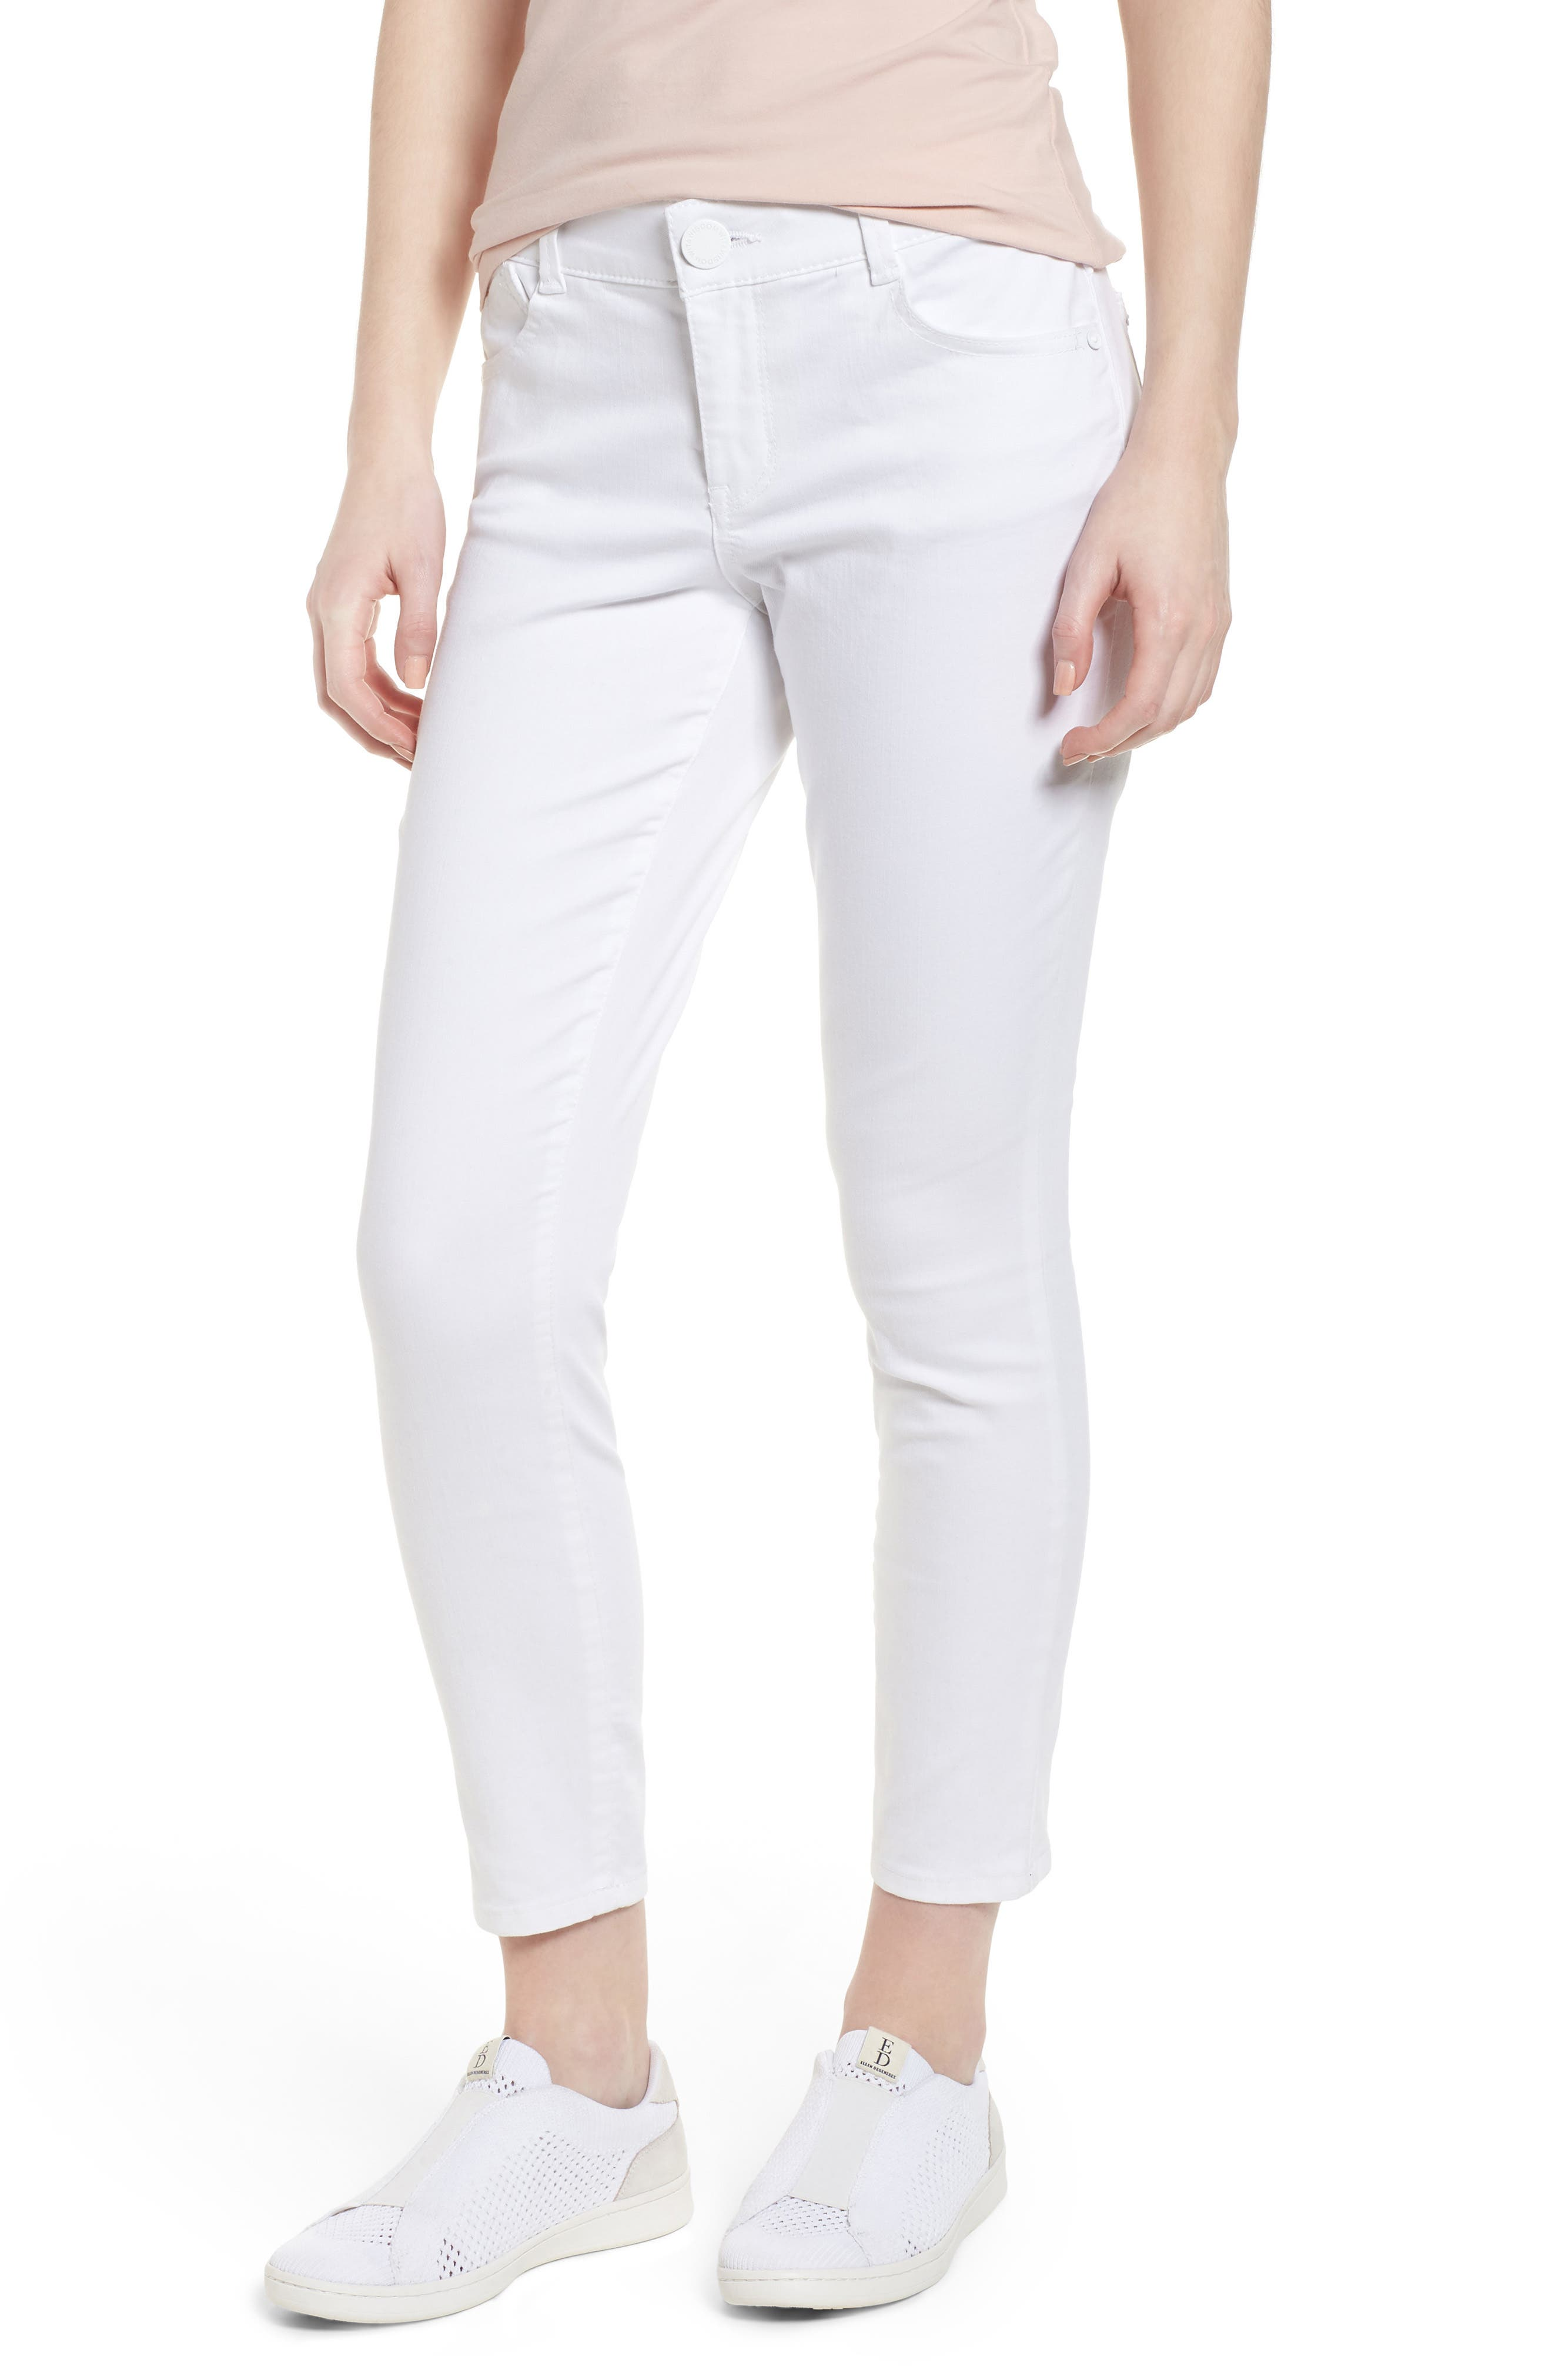 Ab-solution Ankle Skimmer Jeans,                             Main thumbnail 1, color,